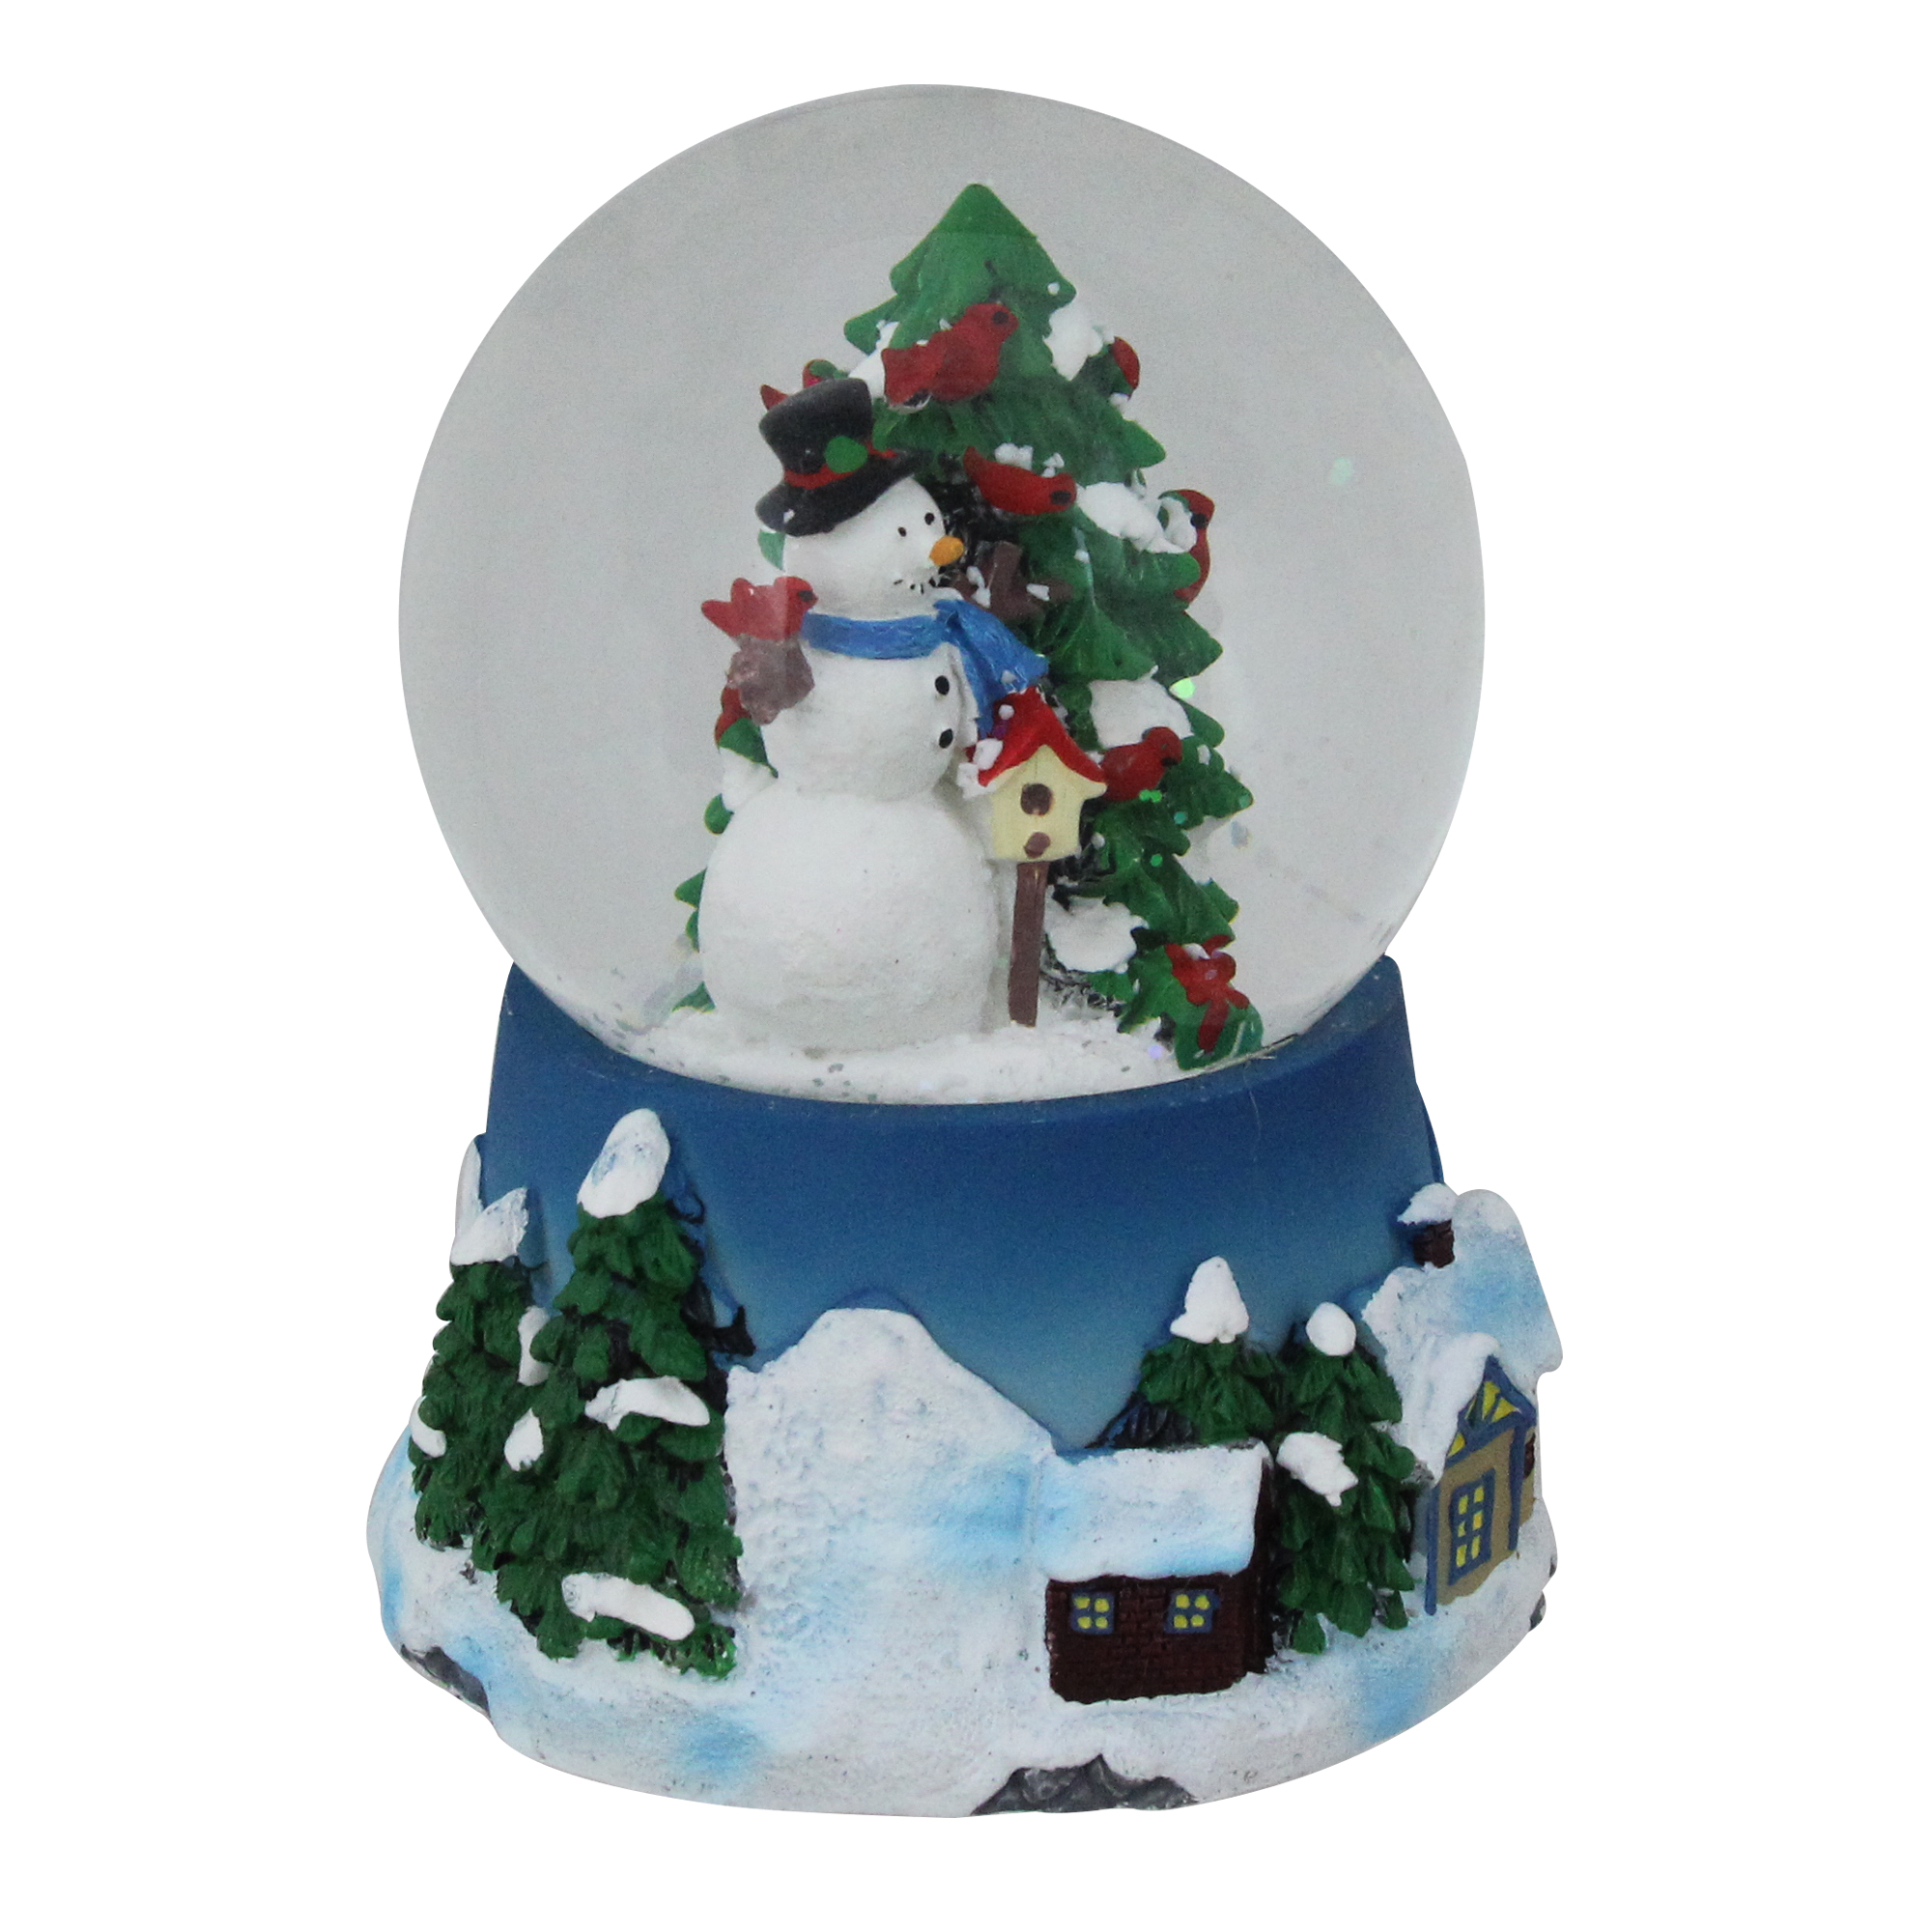 "Snowing And Musical Christmas Tree: Northlight 5"" Musical Snowman, Red Cardinal And Christmas"